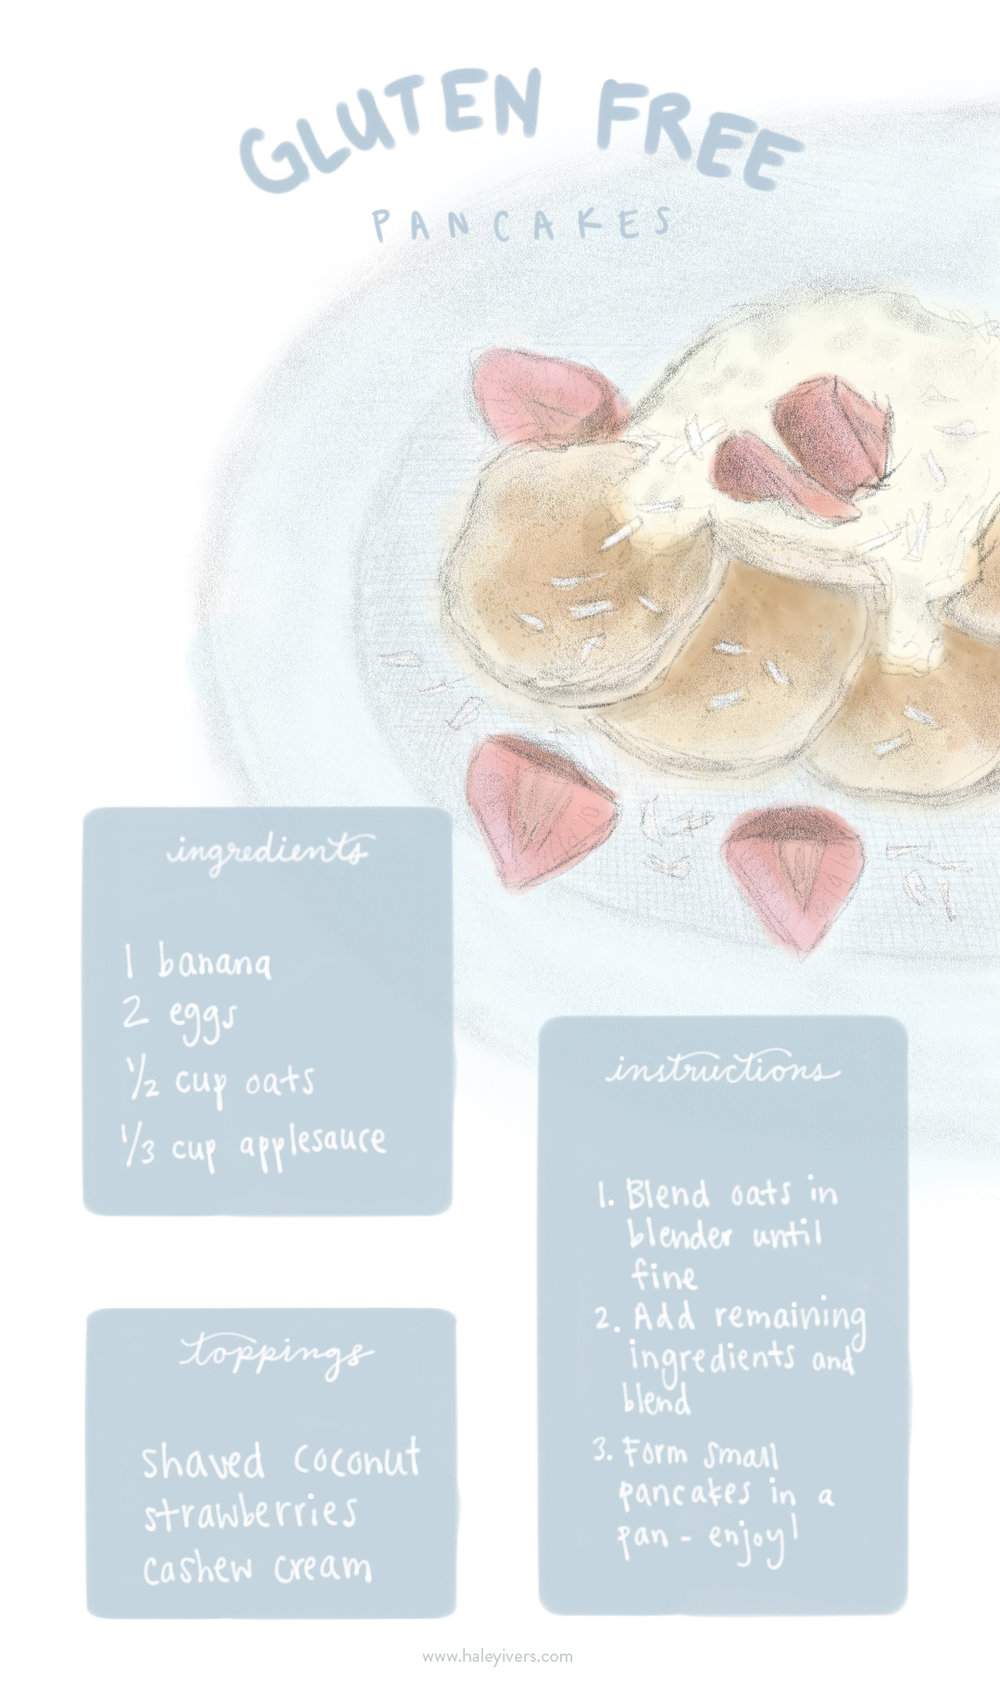 gluten free pancakes recipe and illustration